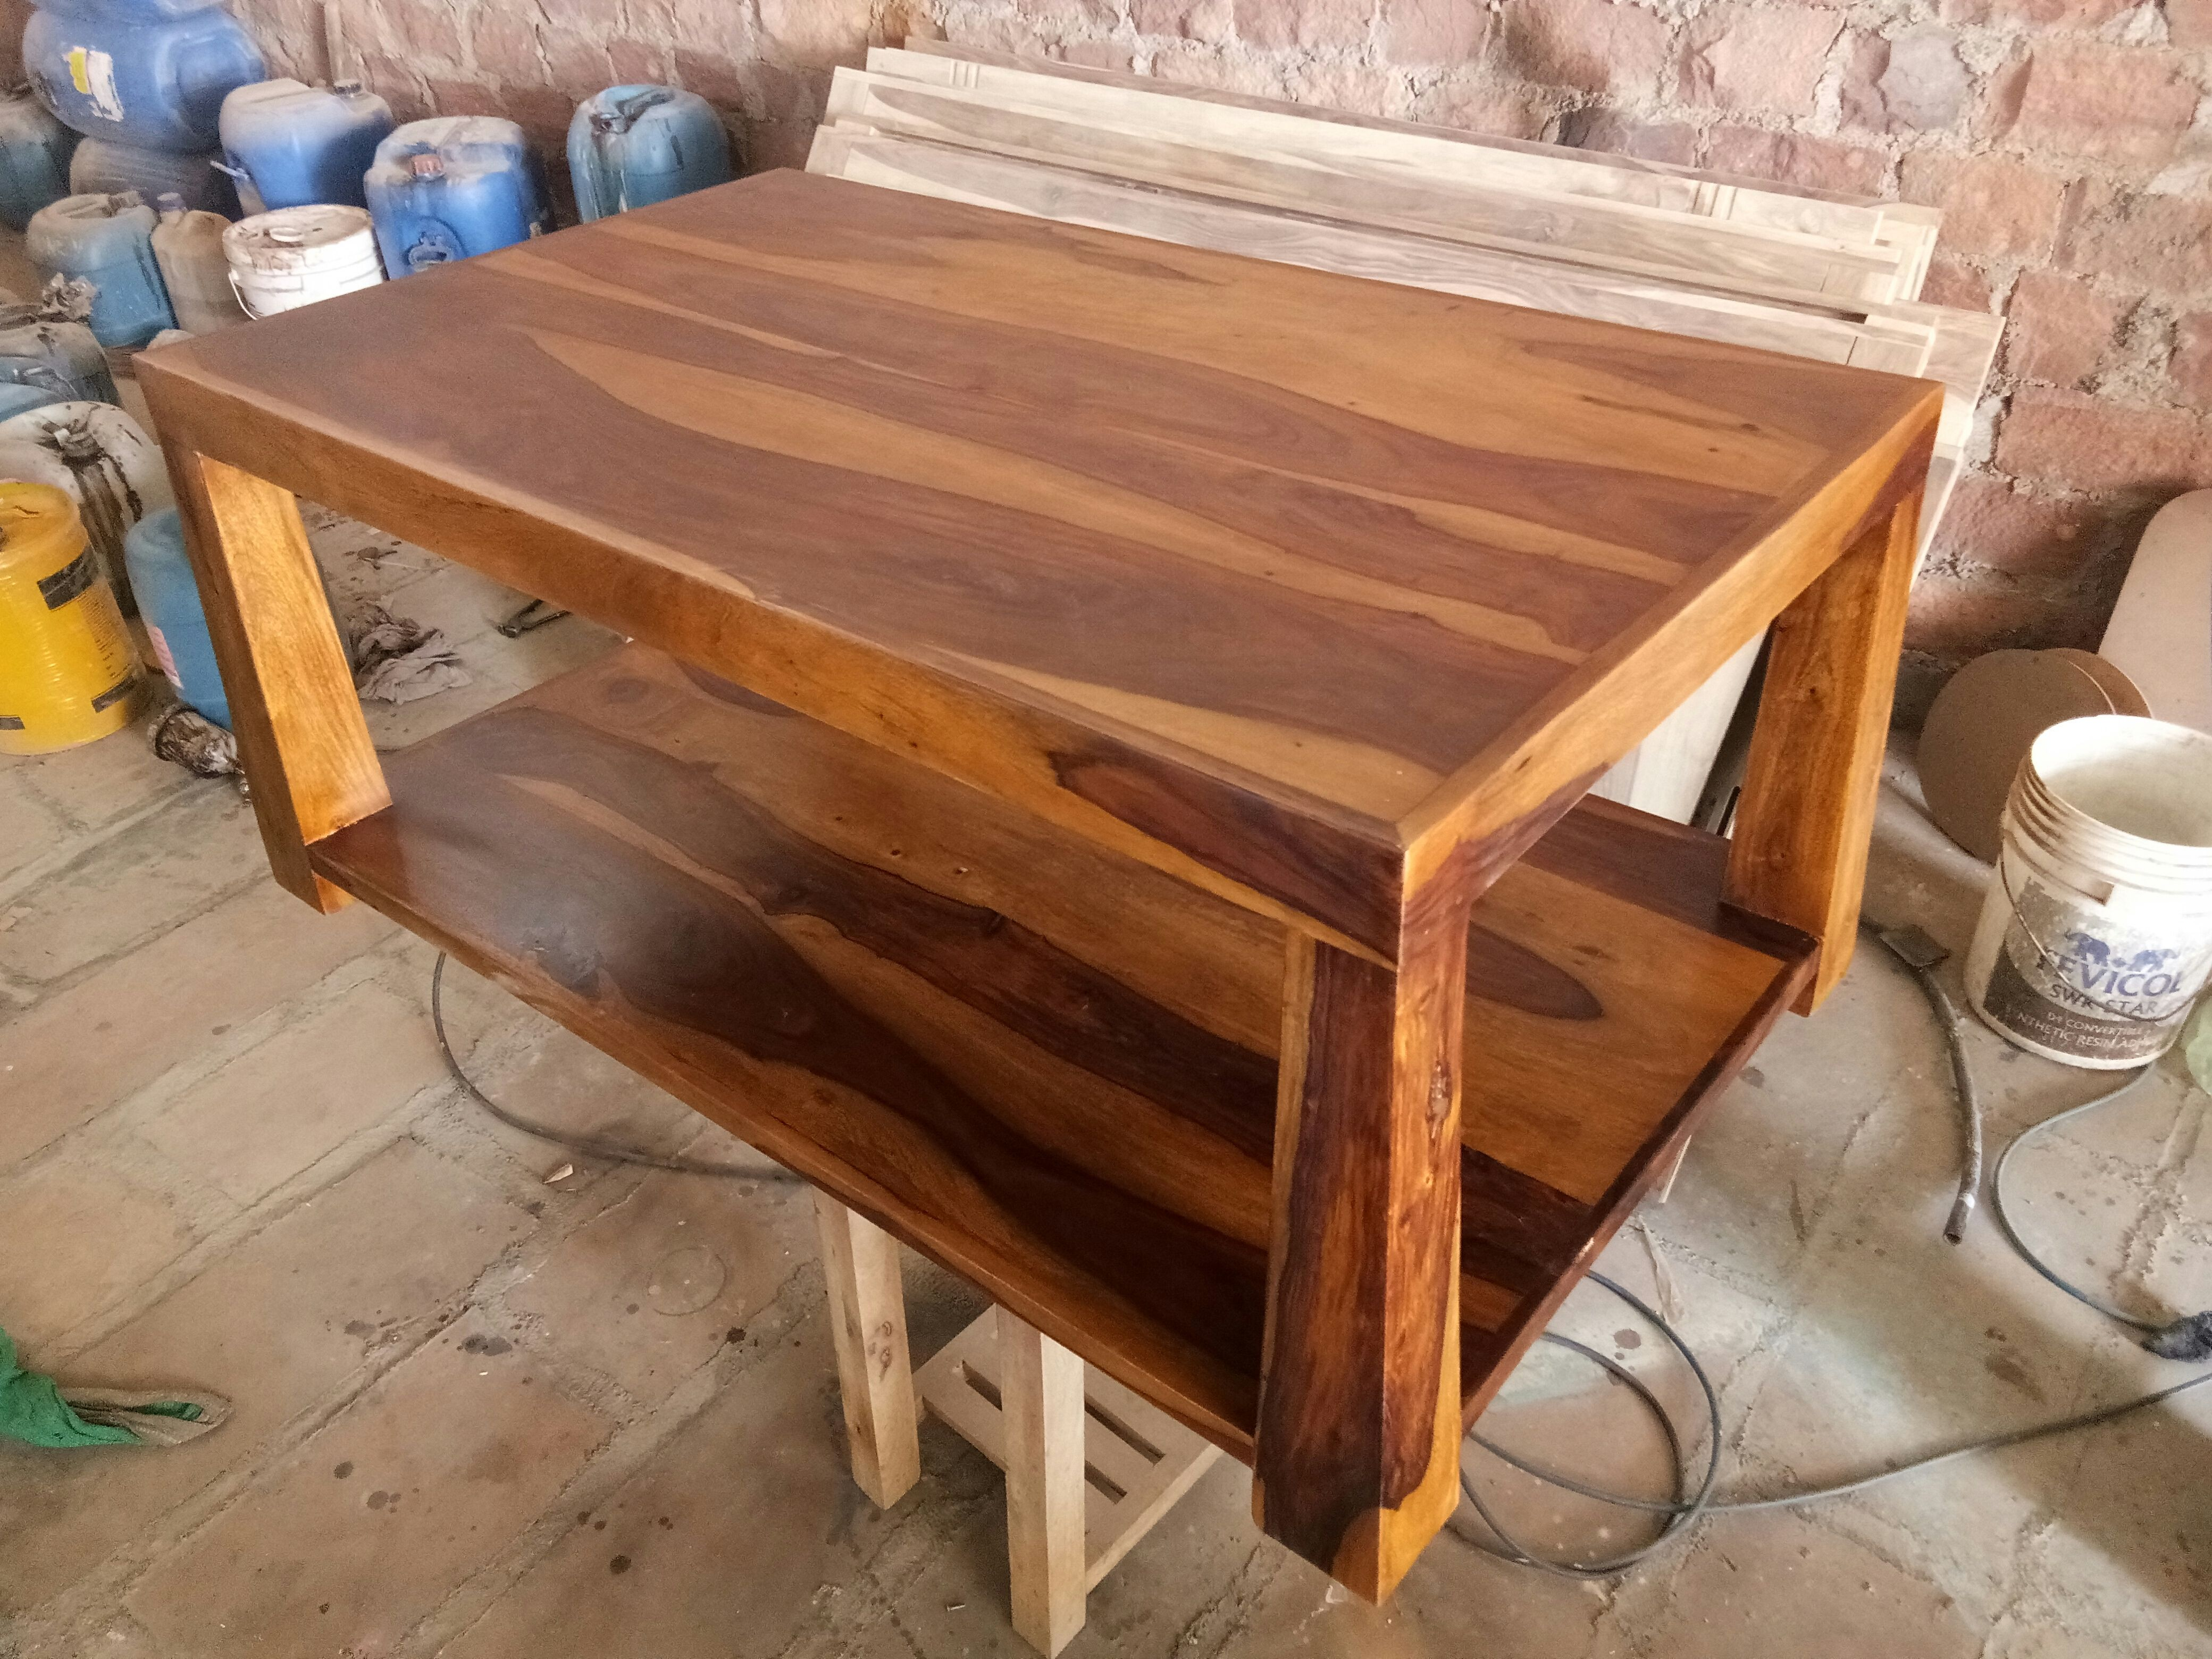 Solid Wooden Coffee Table Made Of Sheesham Wood With Teak Finish Solidwood Furniture Te Reclaimed Wood Coffee Table Coffee Table Rectangle Coffee Table Wood